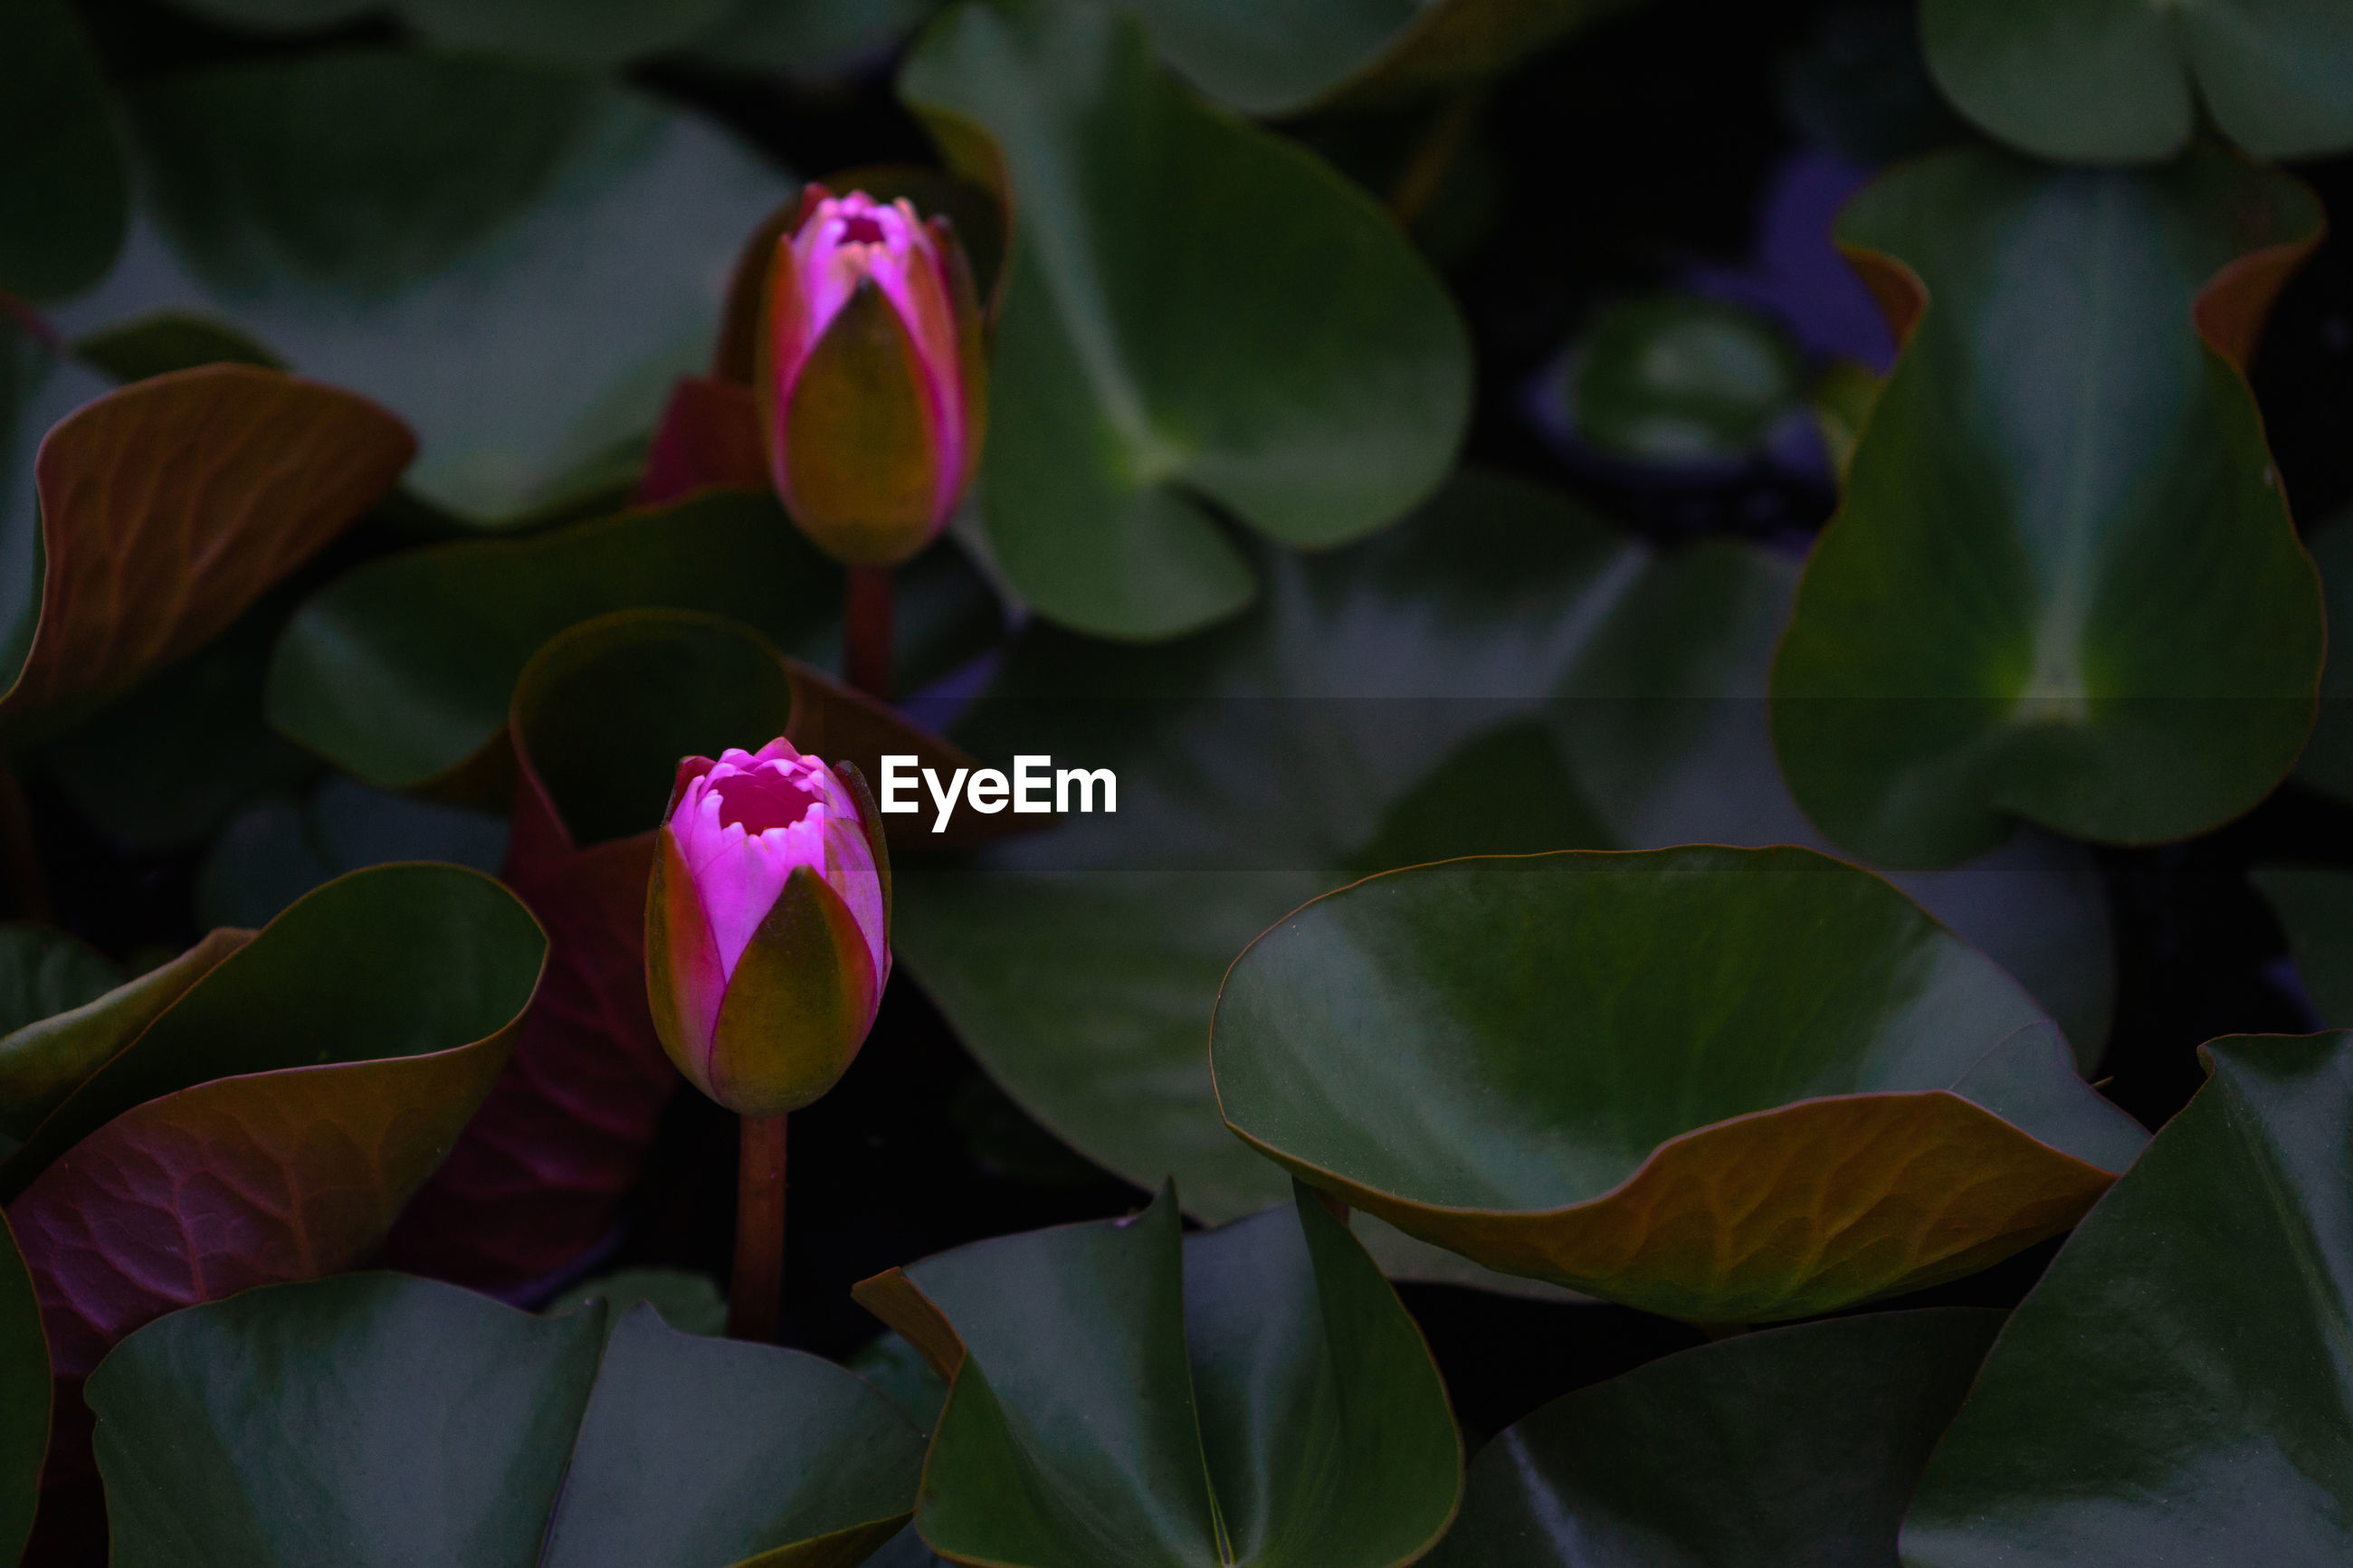 CLOSE-UP OF PINK LOTUS WATER LILY ON PLANT